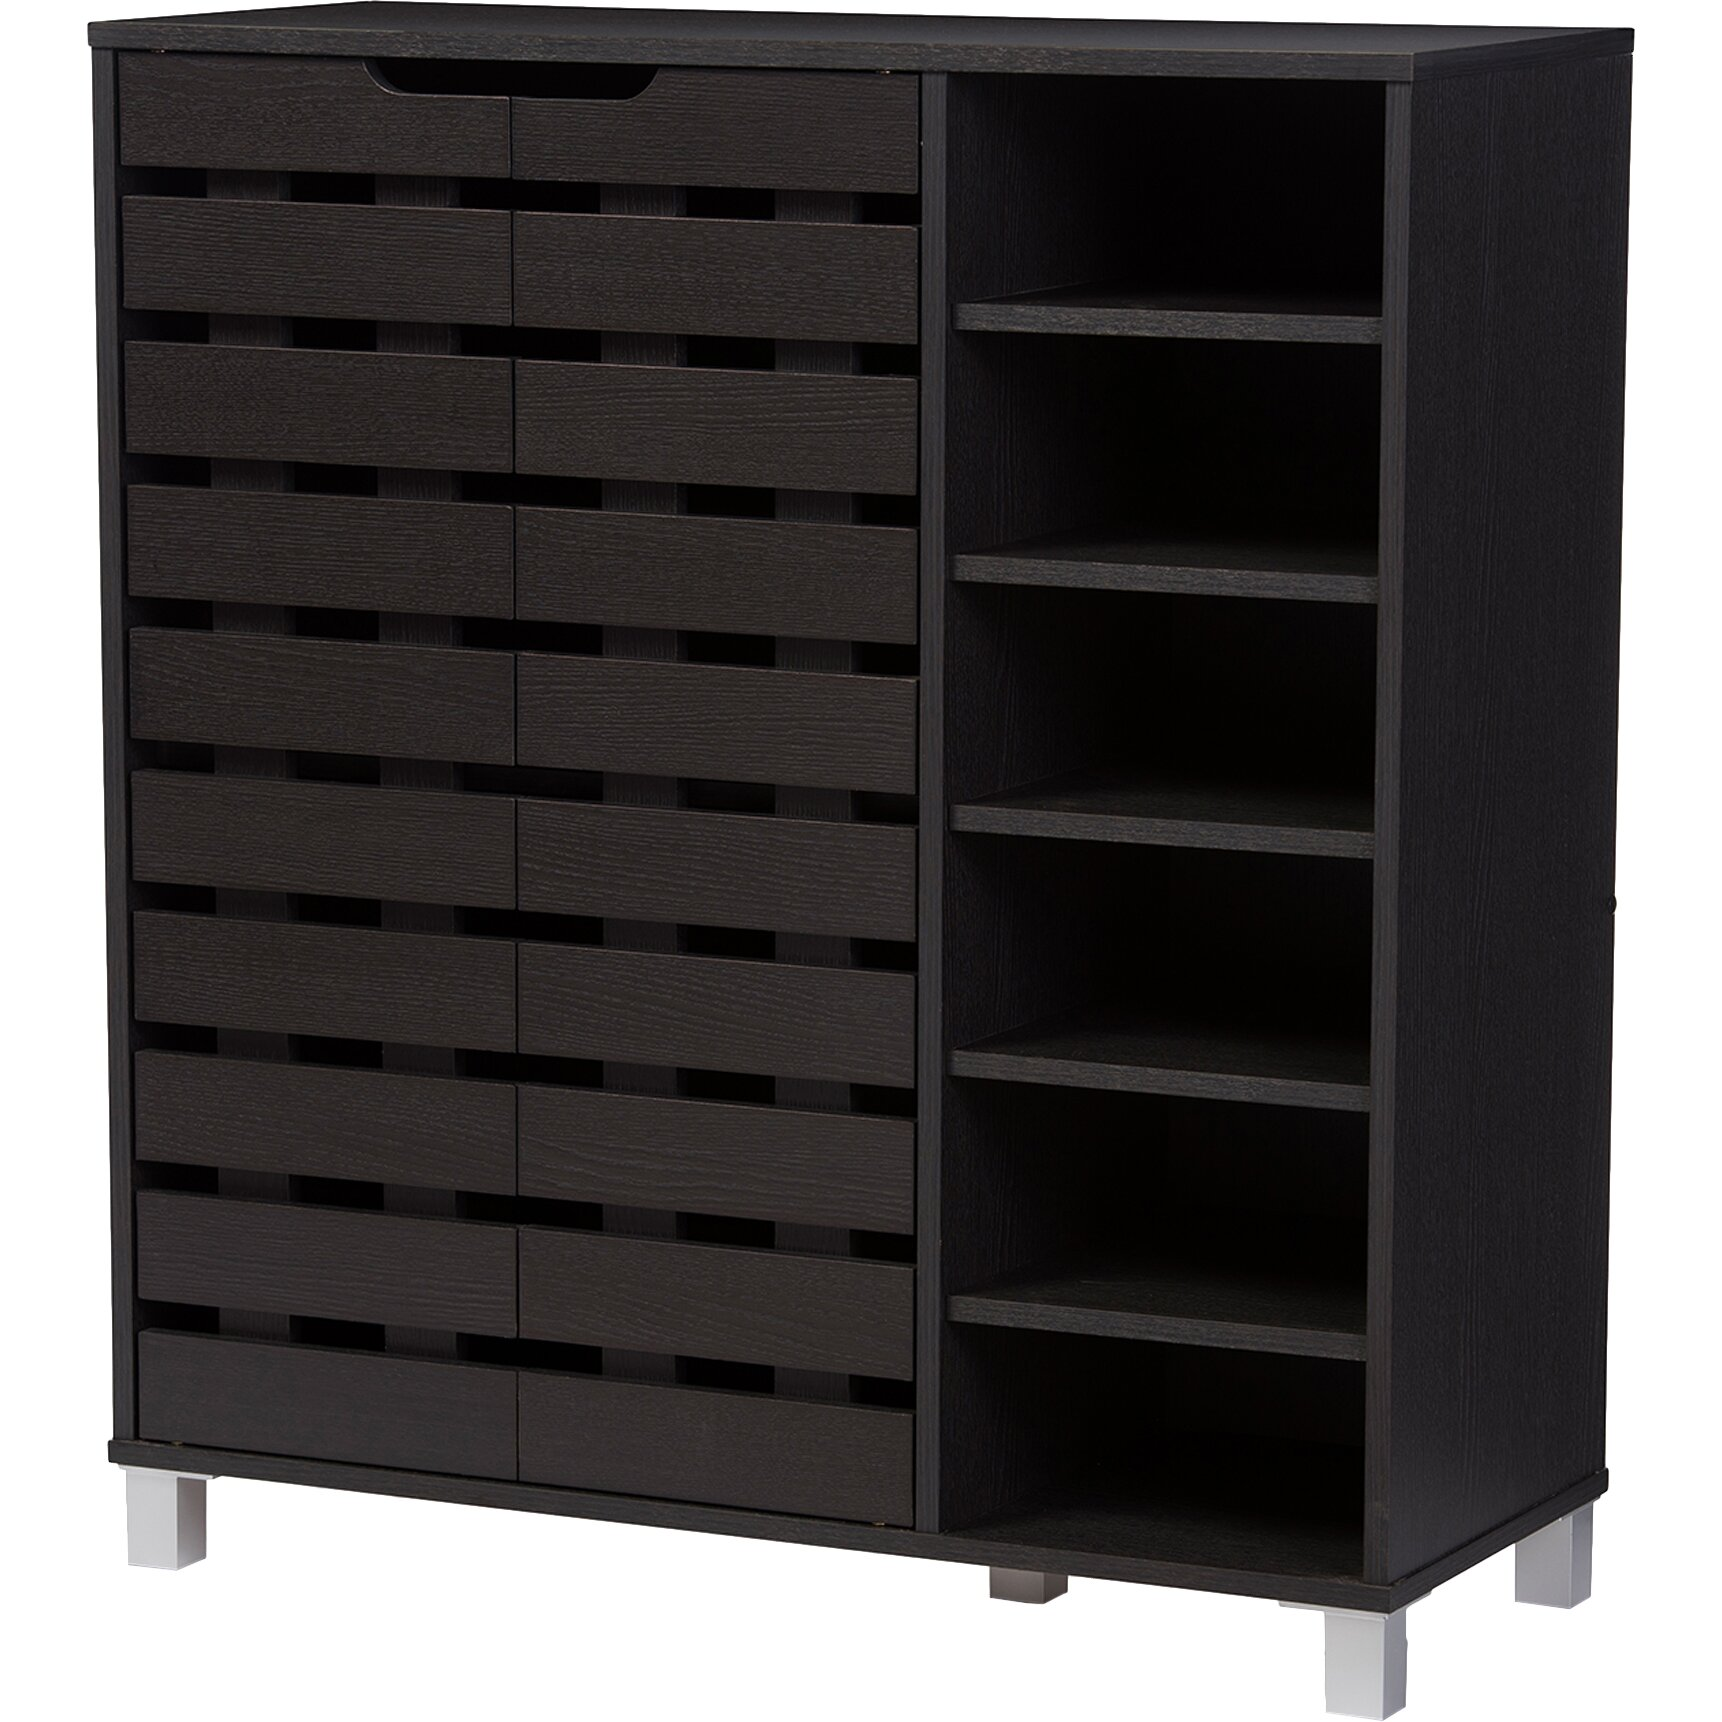 wholesale interiors baxton studio shirley 18 pair shoe. Black Bedroom Furniture Sets. Home Design Ideas